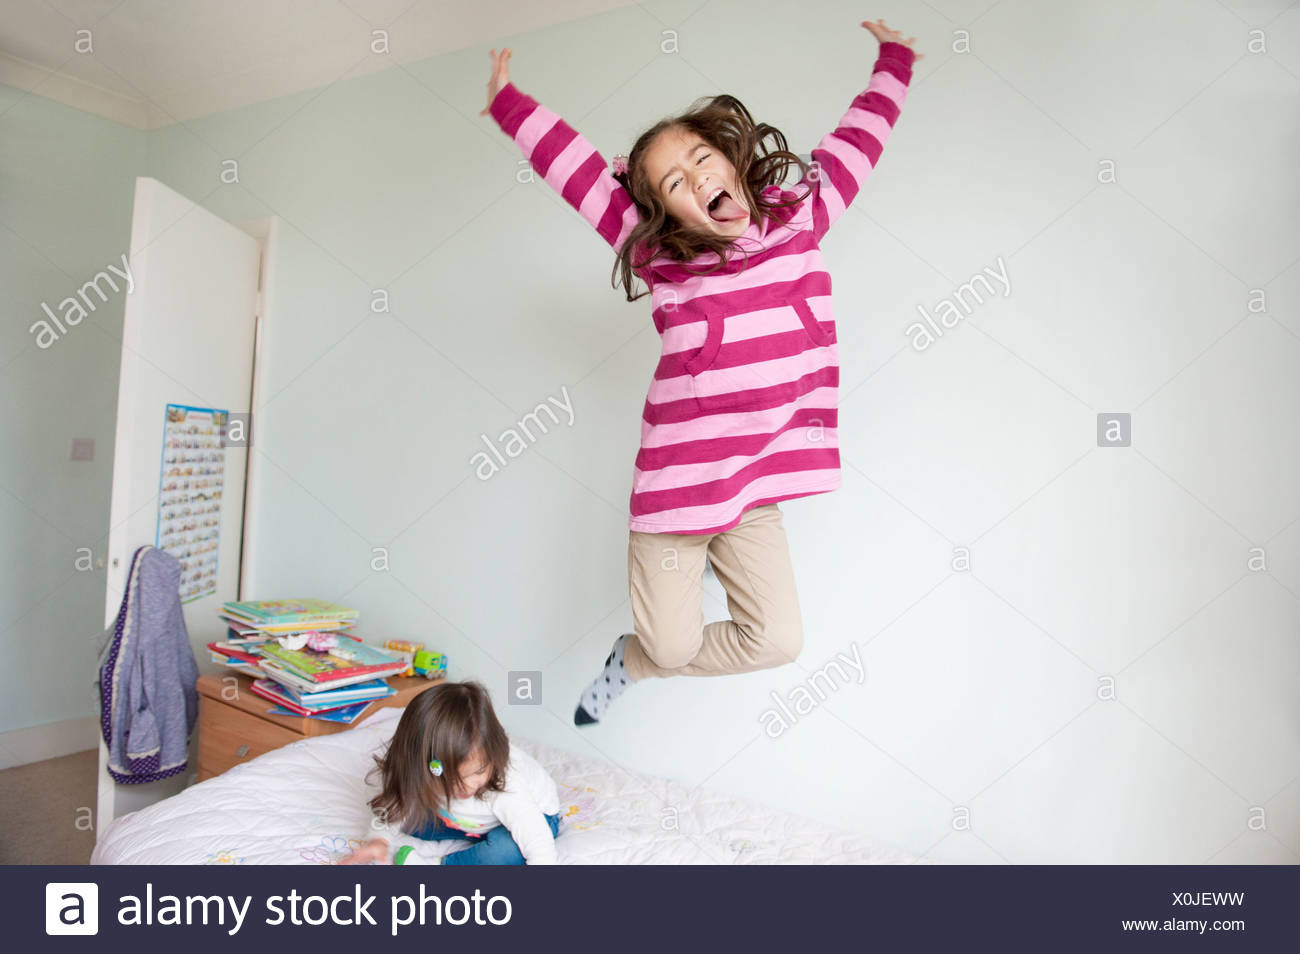 Girl jumping on bed and pulling face Stock Photo